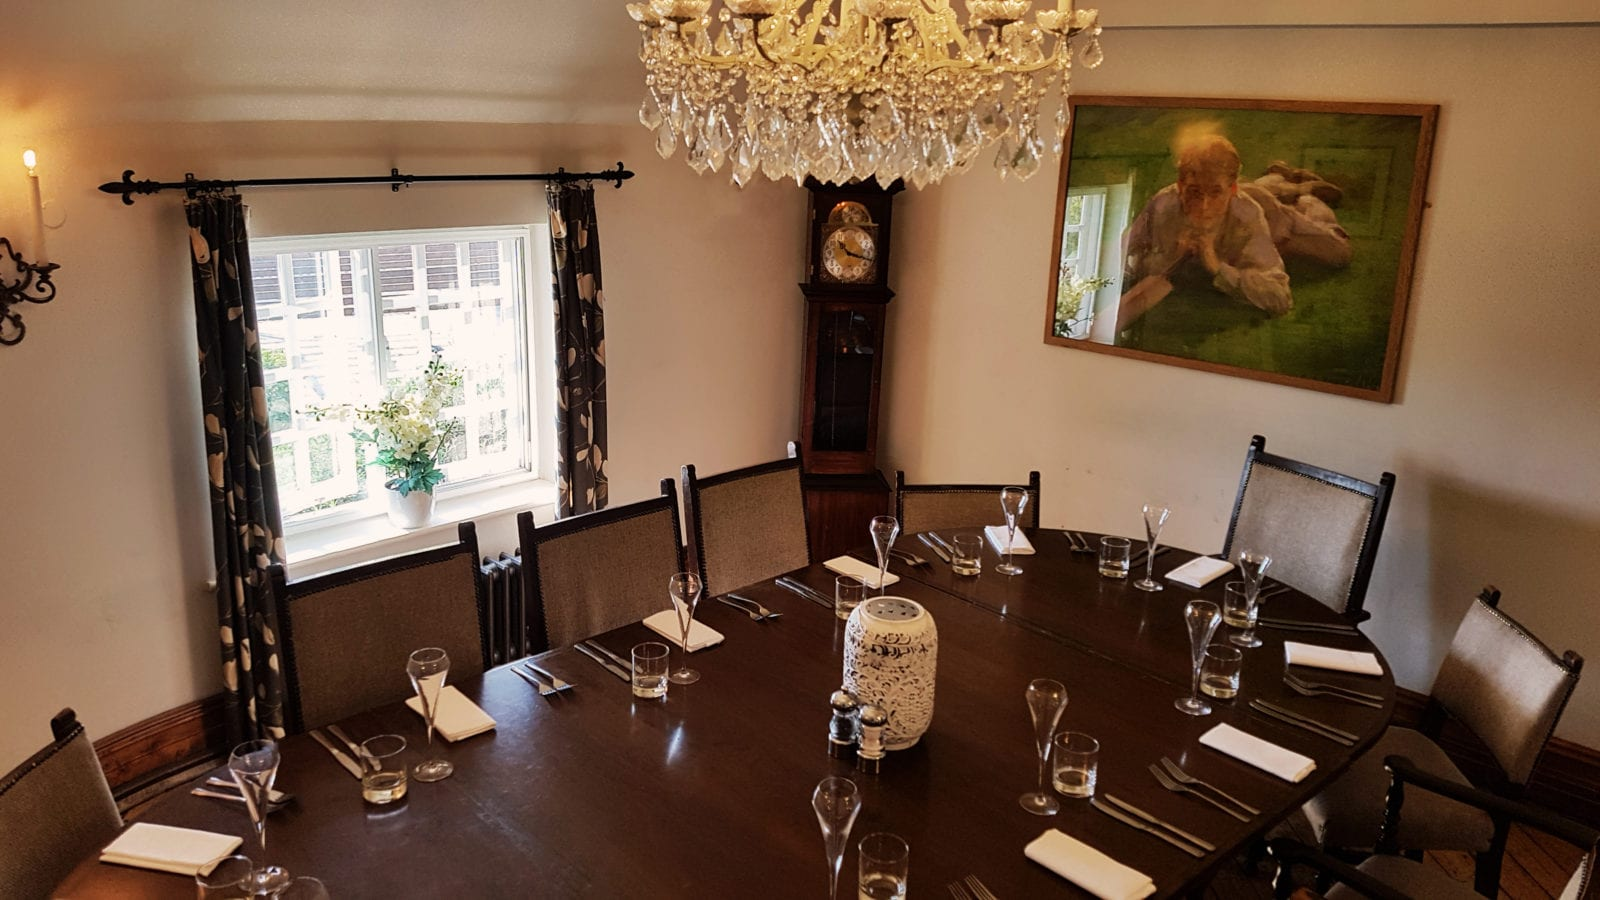 Photo of the Private room at The Spring - www.thespringinn.co.uk